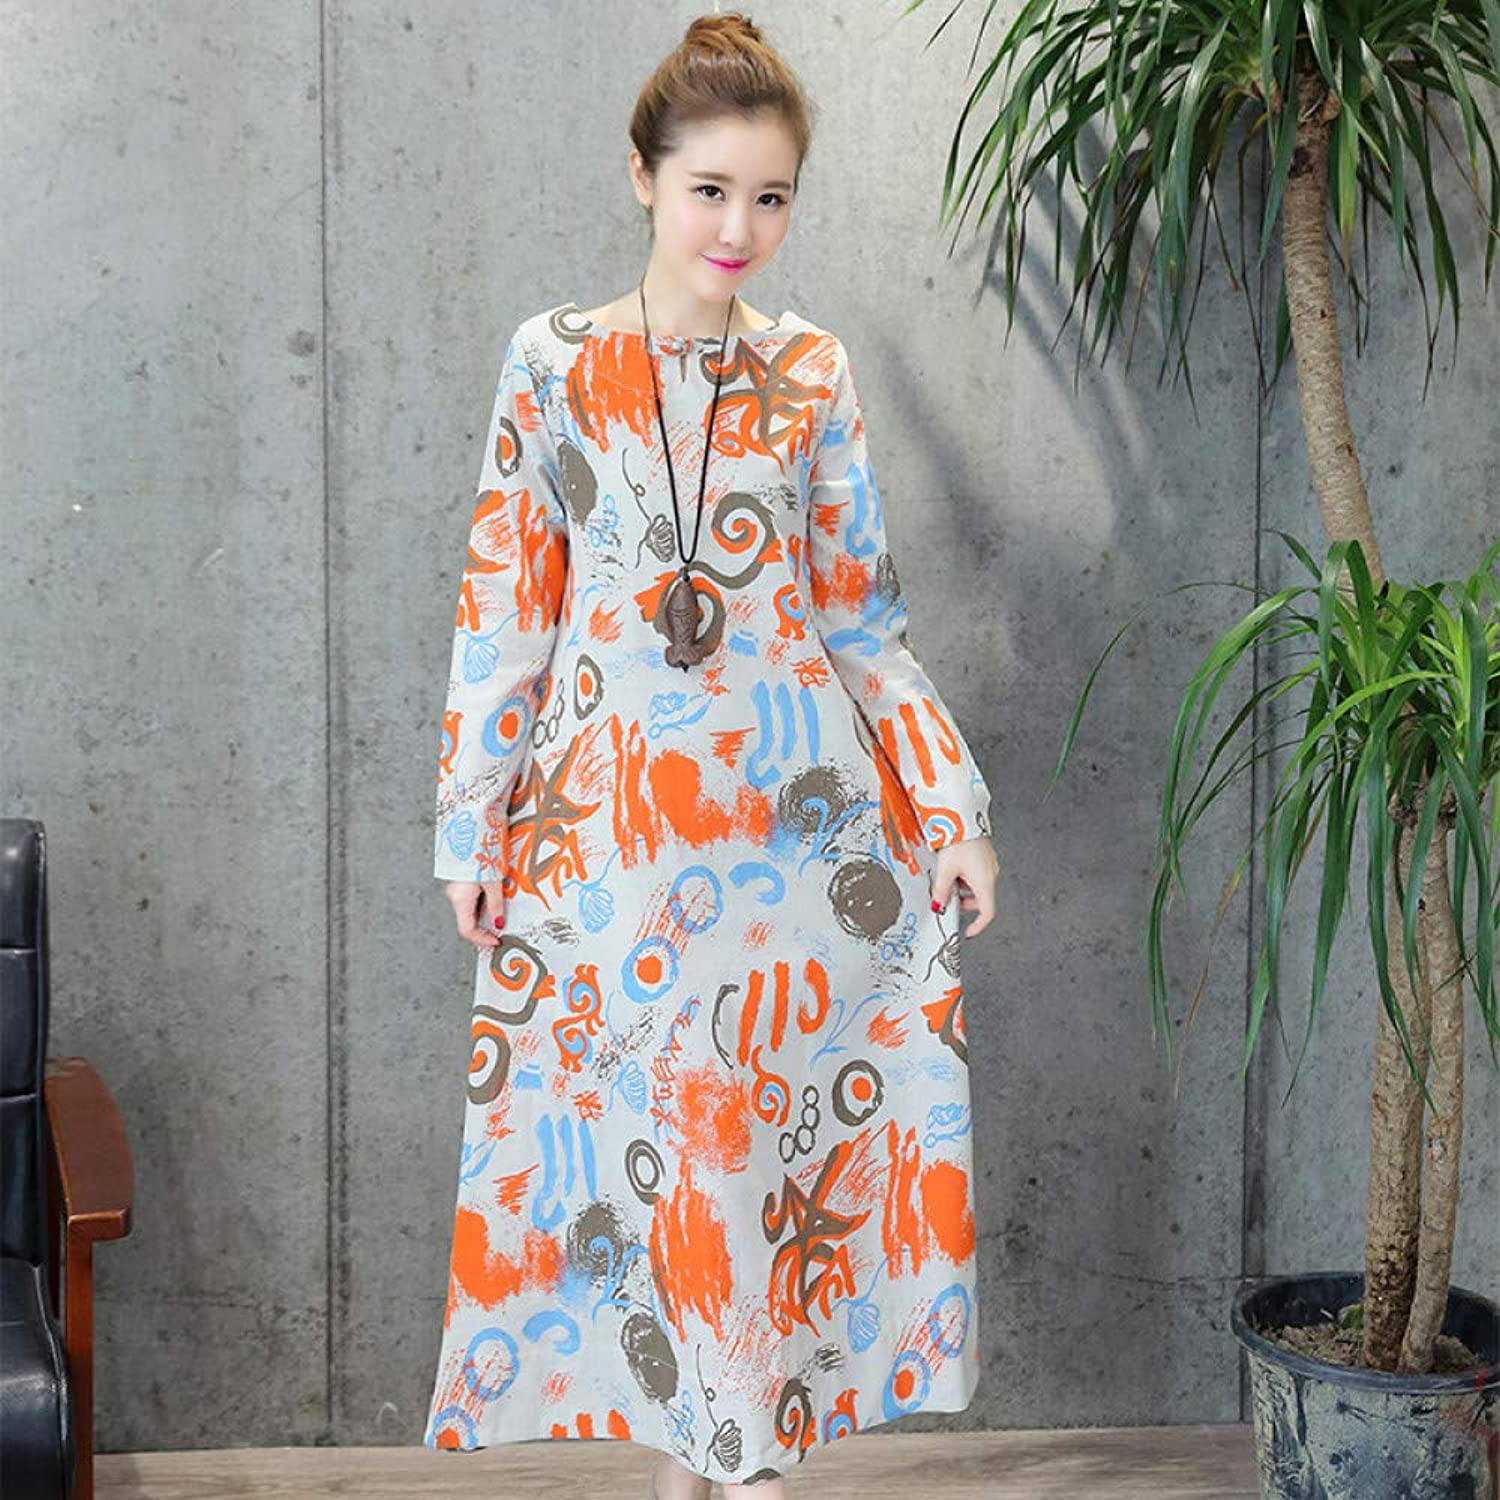 Cxlyq Dresses Autumn Large Size Women's Buckle Printed Long Sleeve Cotton and Linen Dress